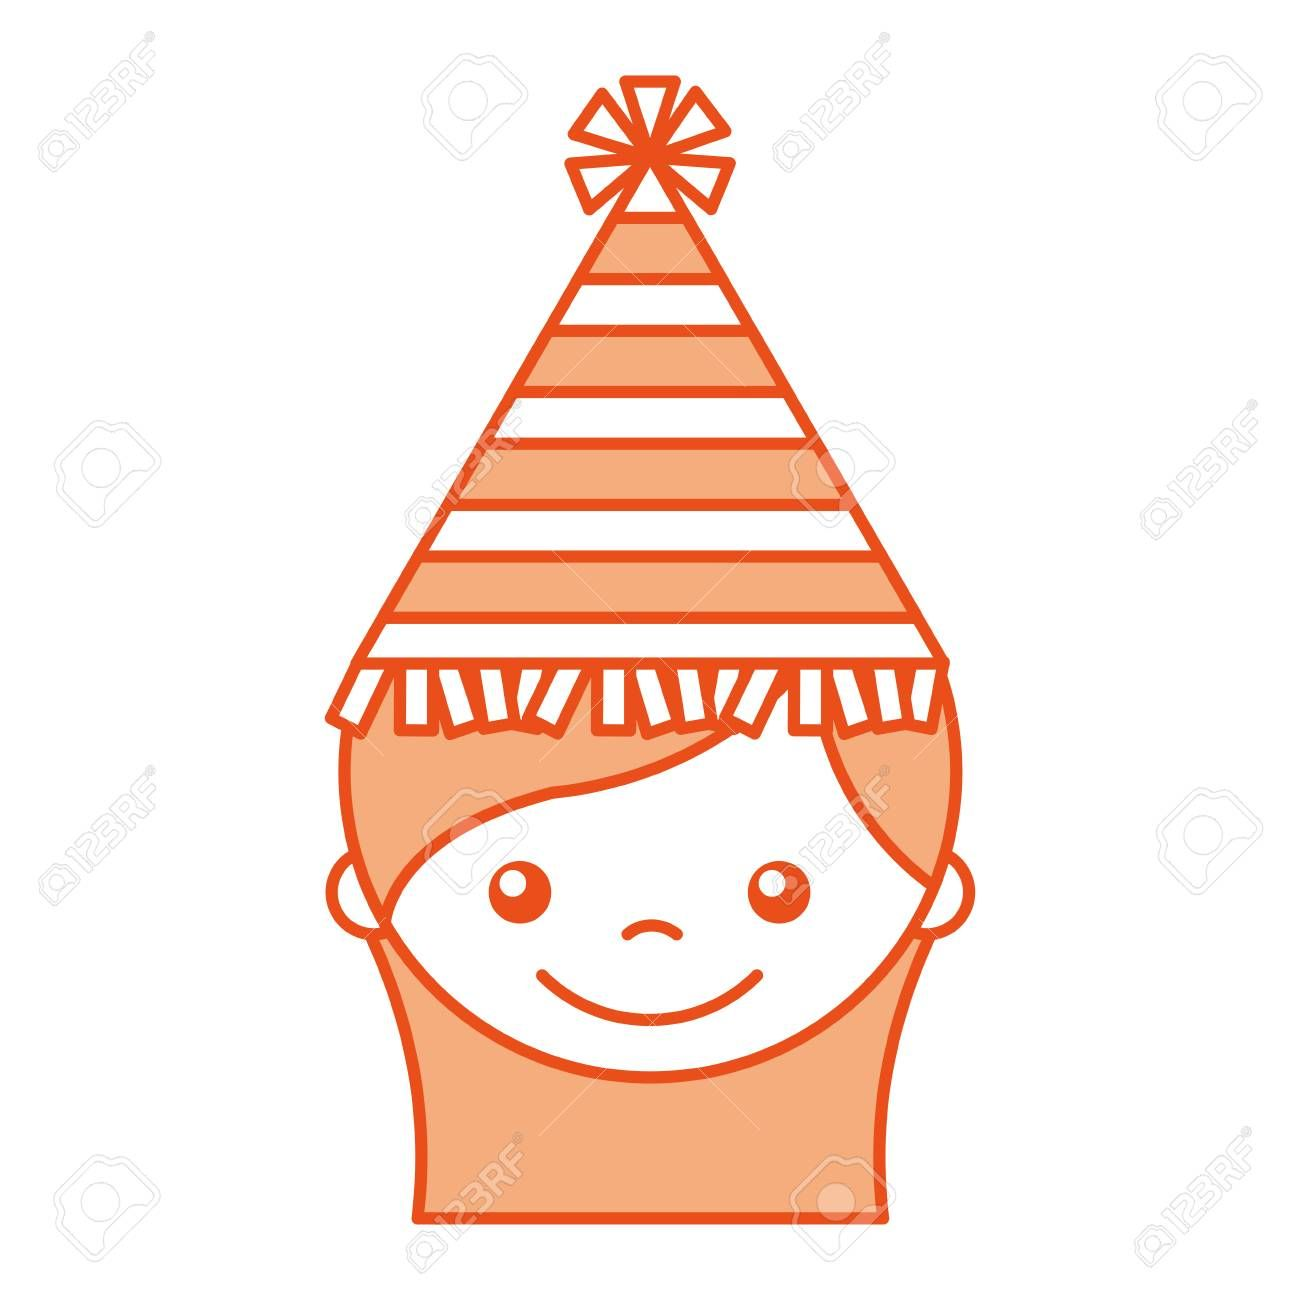 cute girl with party hat character icon vector illustration design , #spon, #party, #hat, #cute, #girl, #character